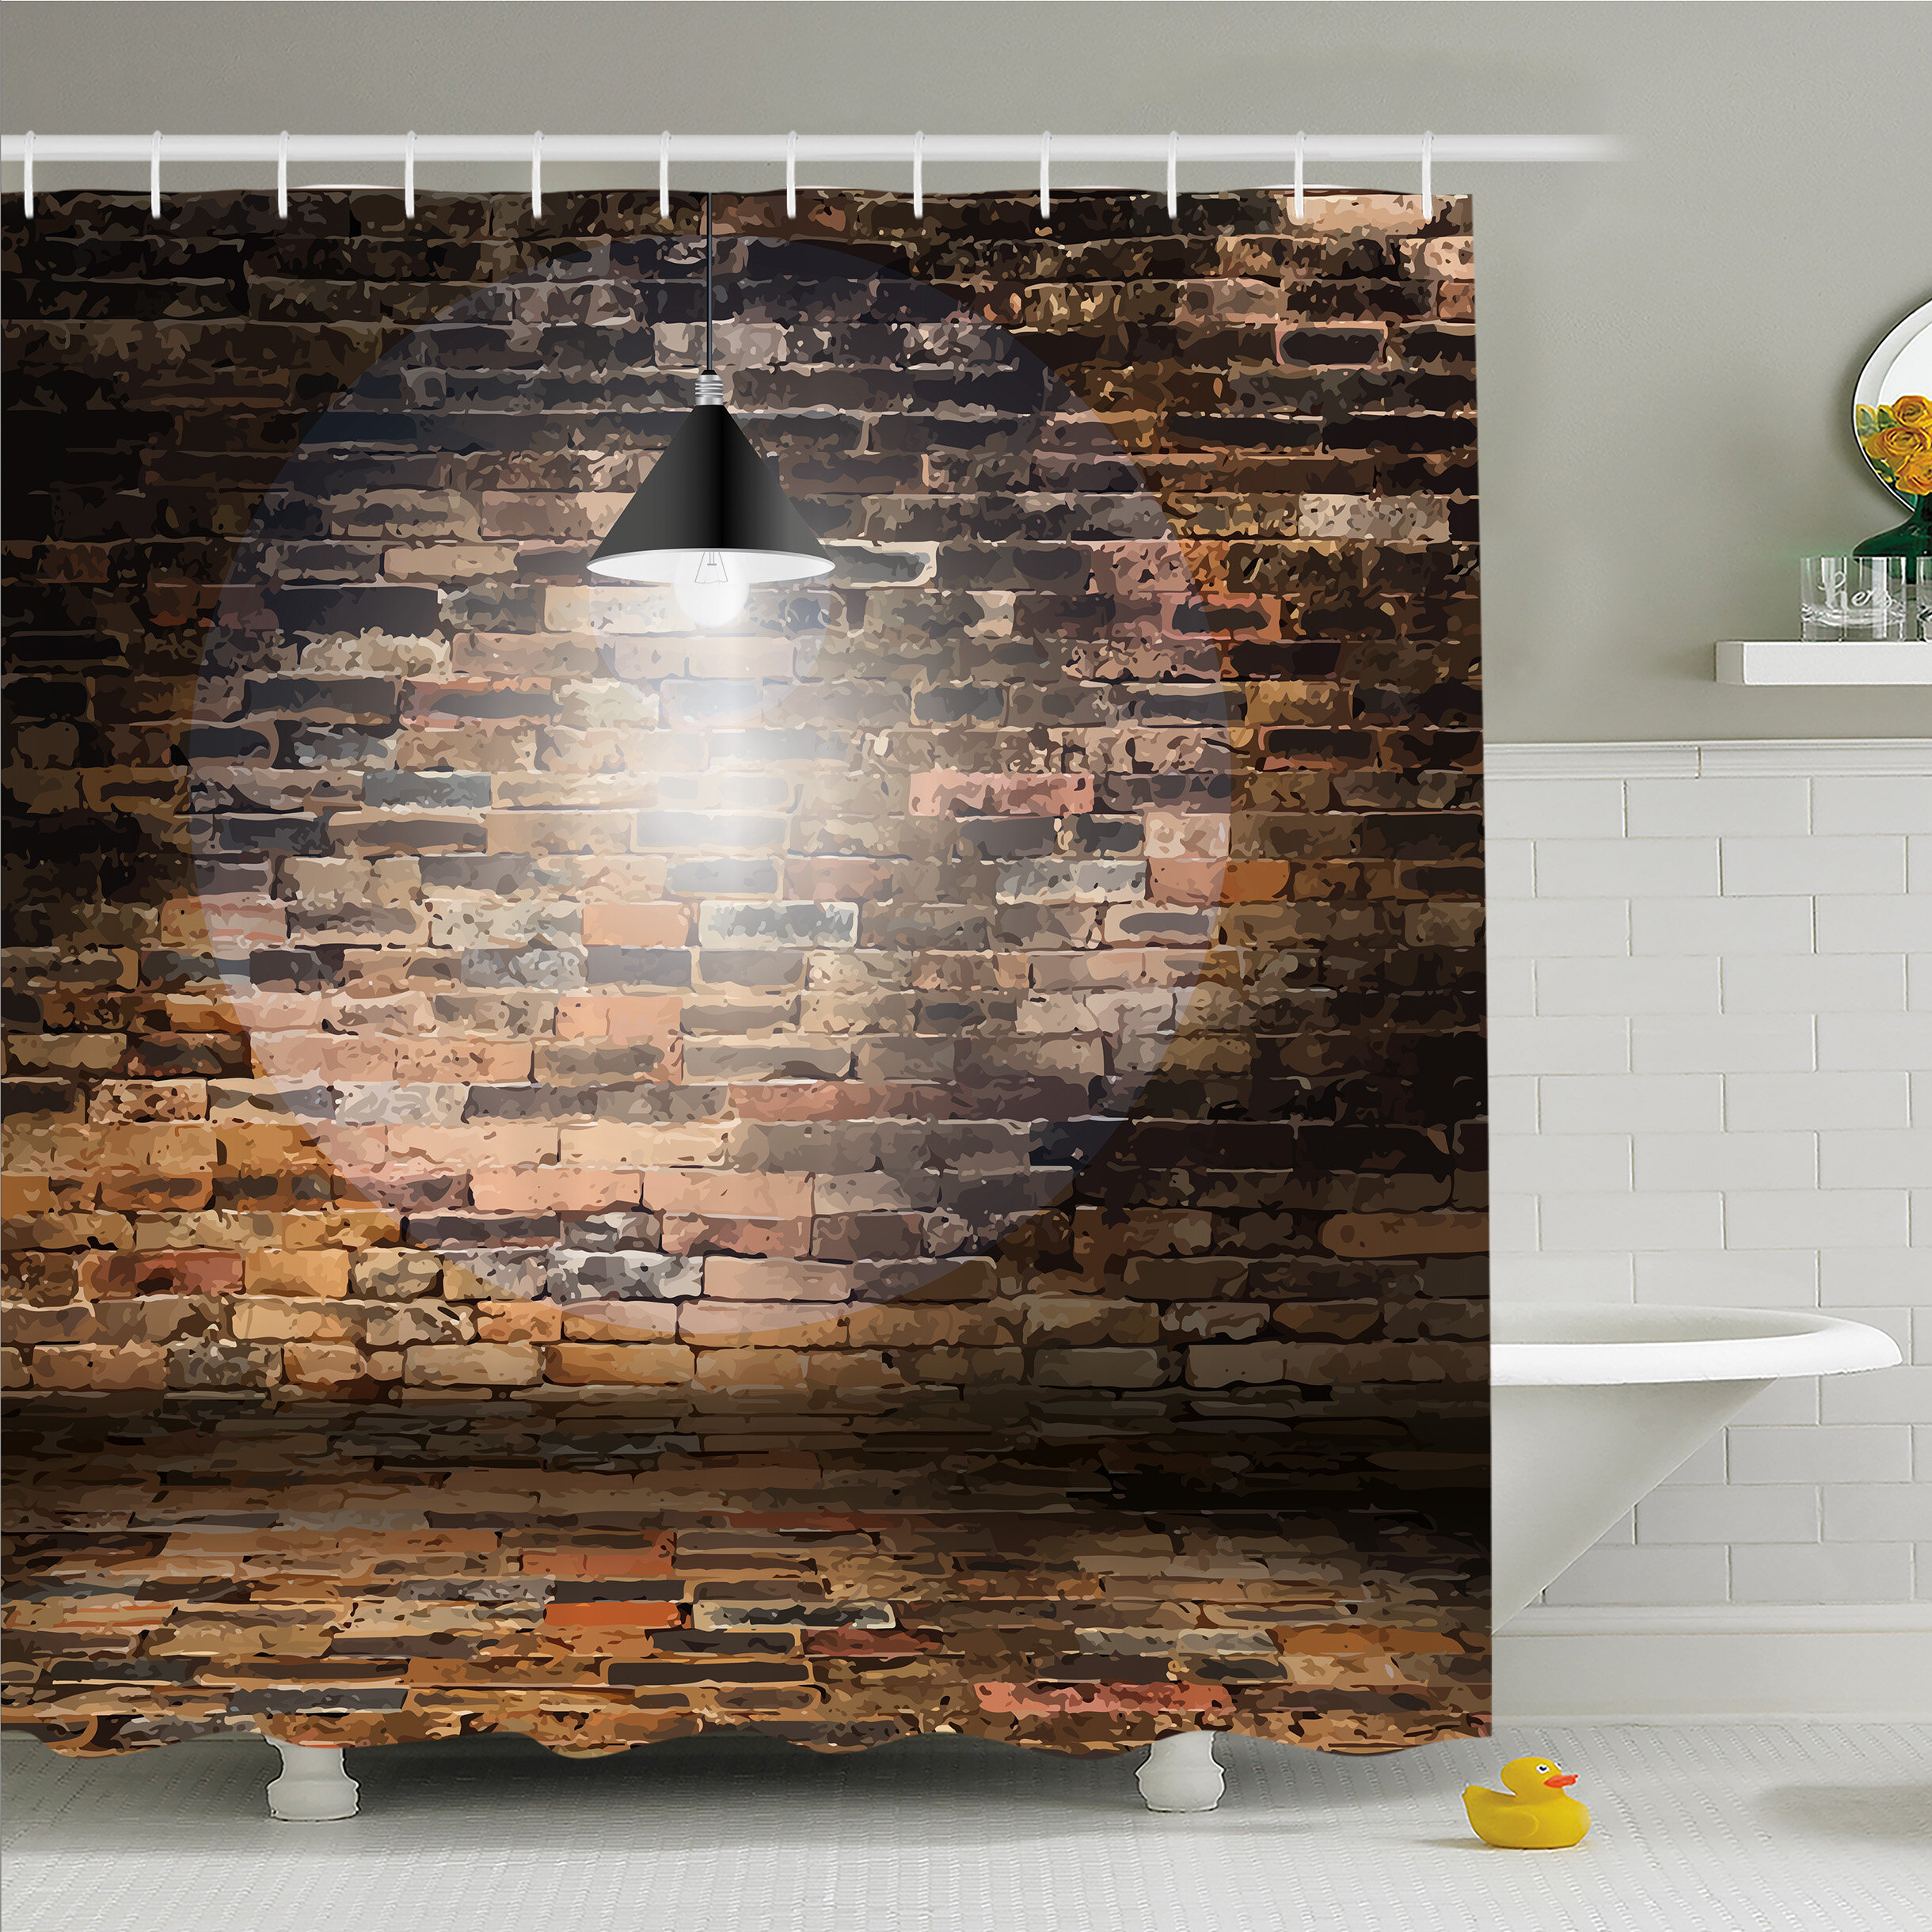 Ambesonne Rustic Home Dark Cracked Bricks Ceiling Lamp Spot Light Building Image Shower Curtain Set